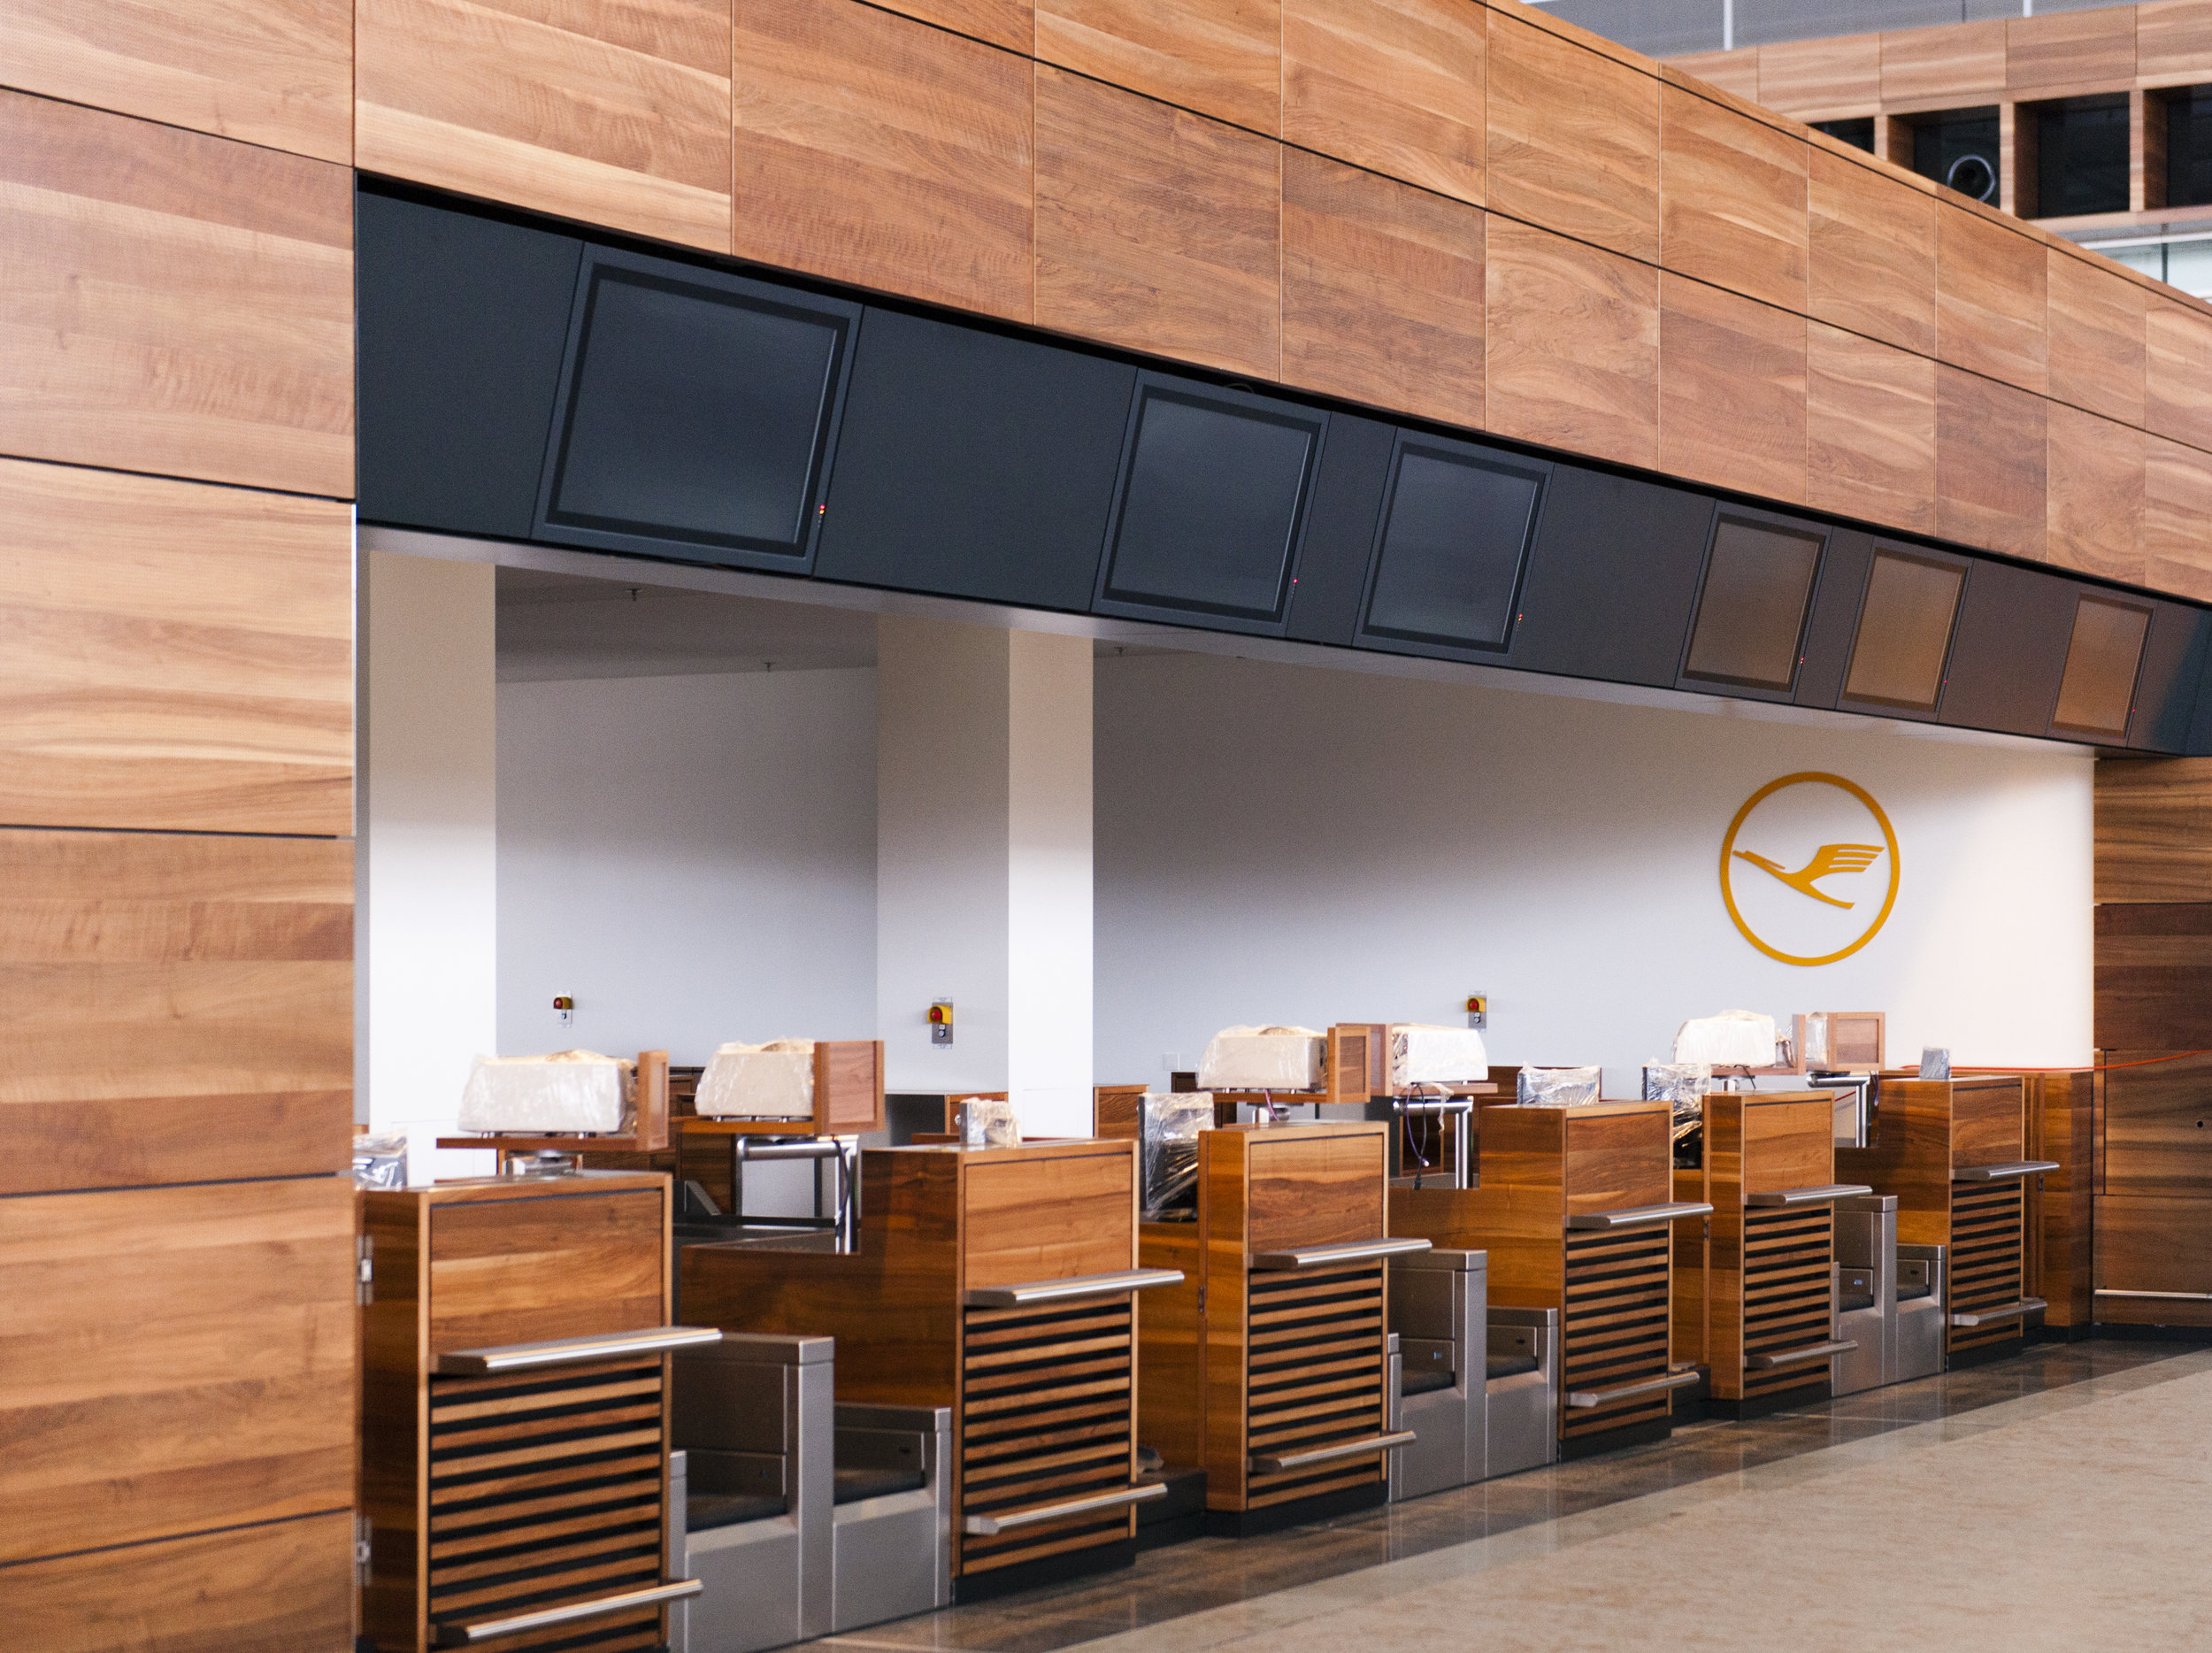 Airport The Laird CO BER Brandenburg Airport Architecture Interiors Lufthansa aviation avgeek photography.jpg